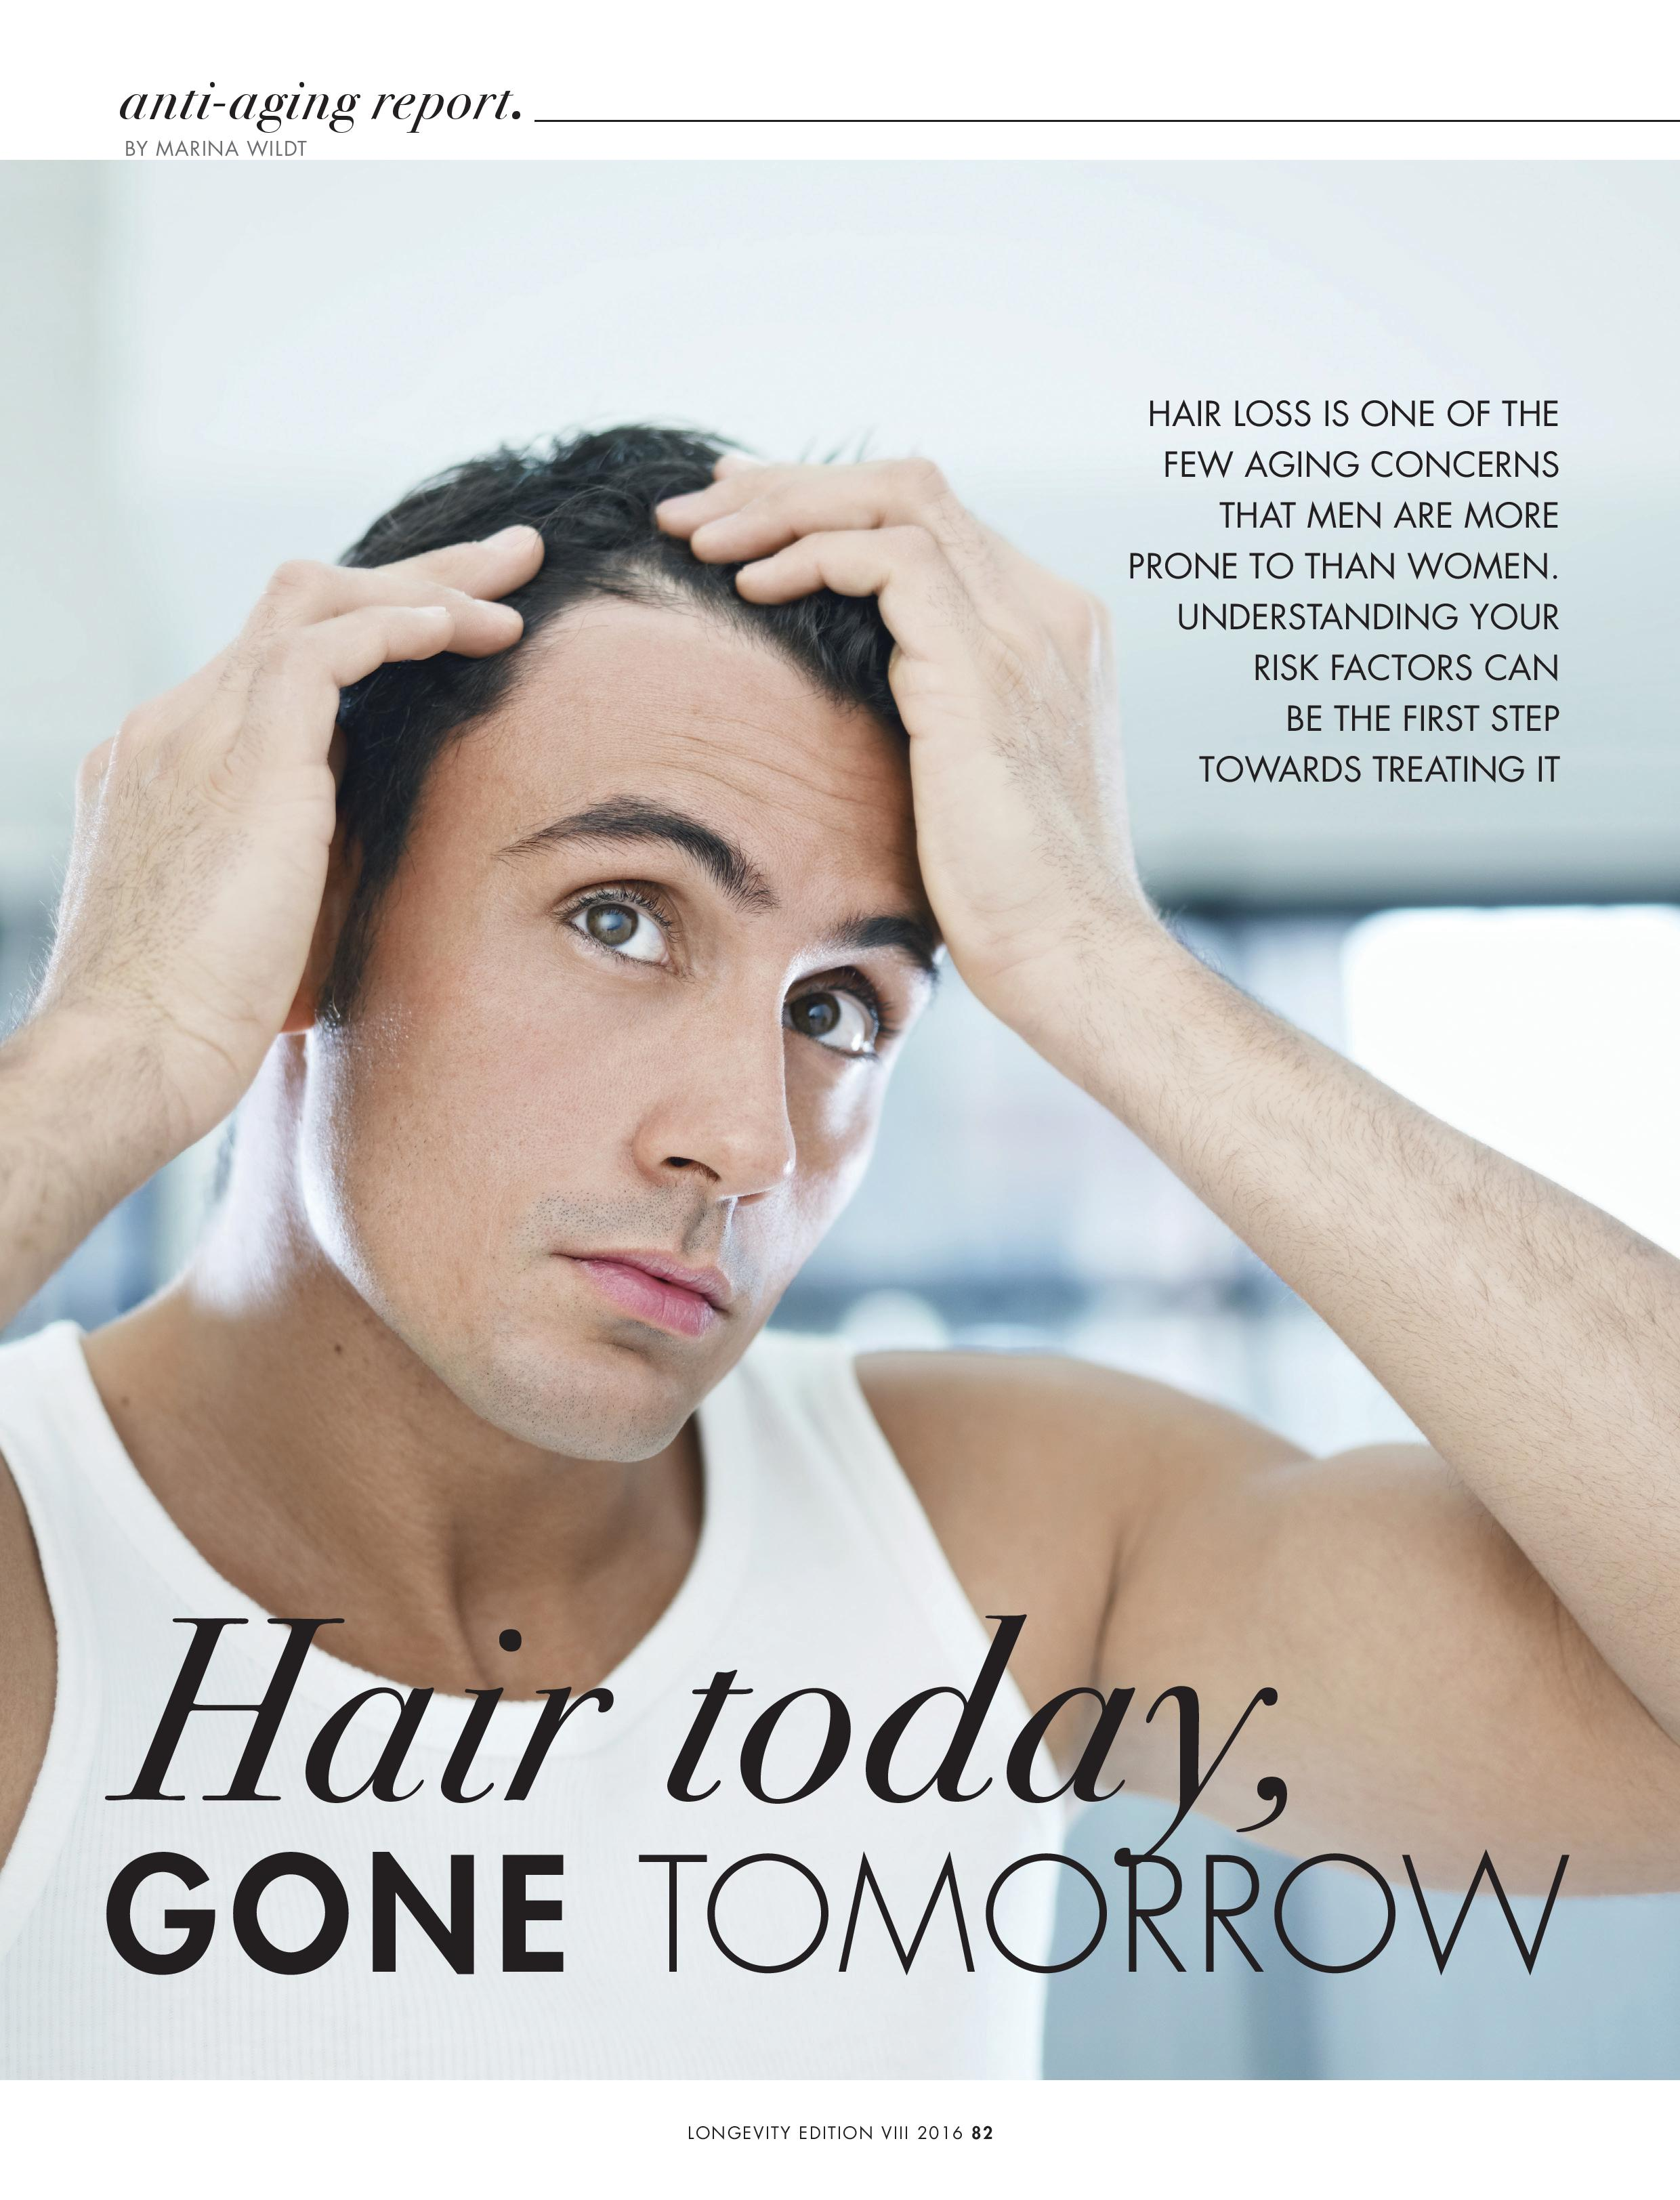 Anti-aging-report_Hair-today-gone-tomorrow-1.1-page-001